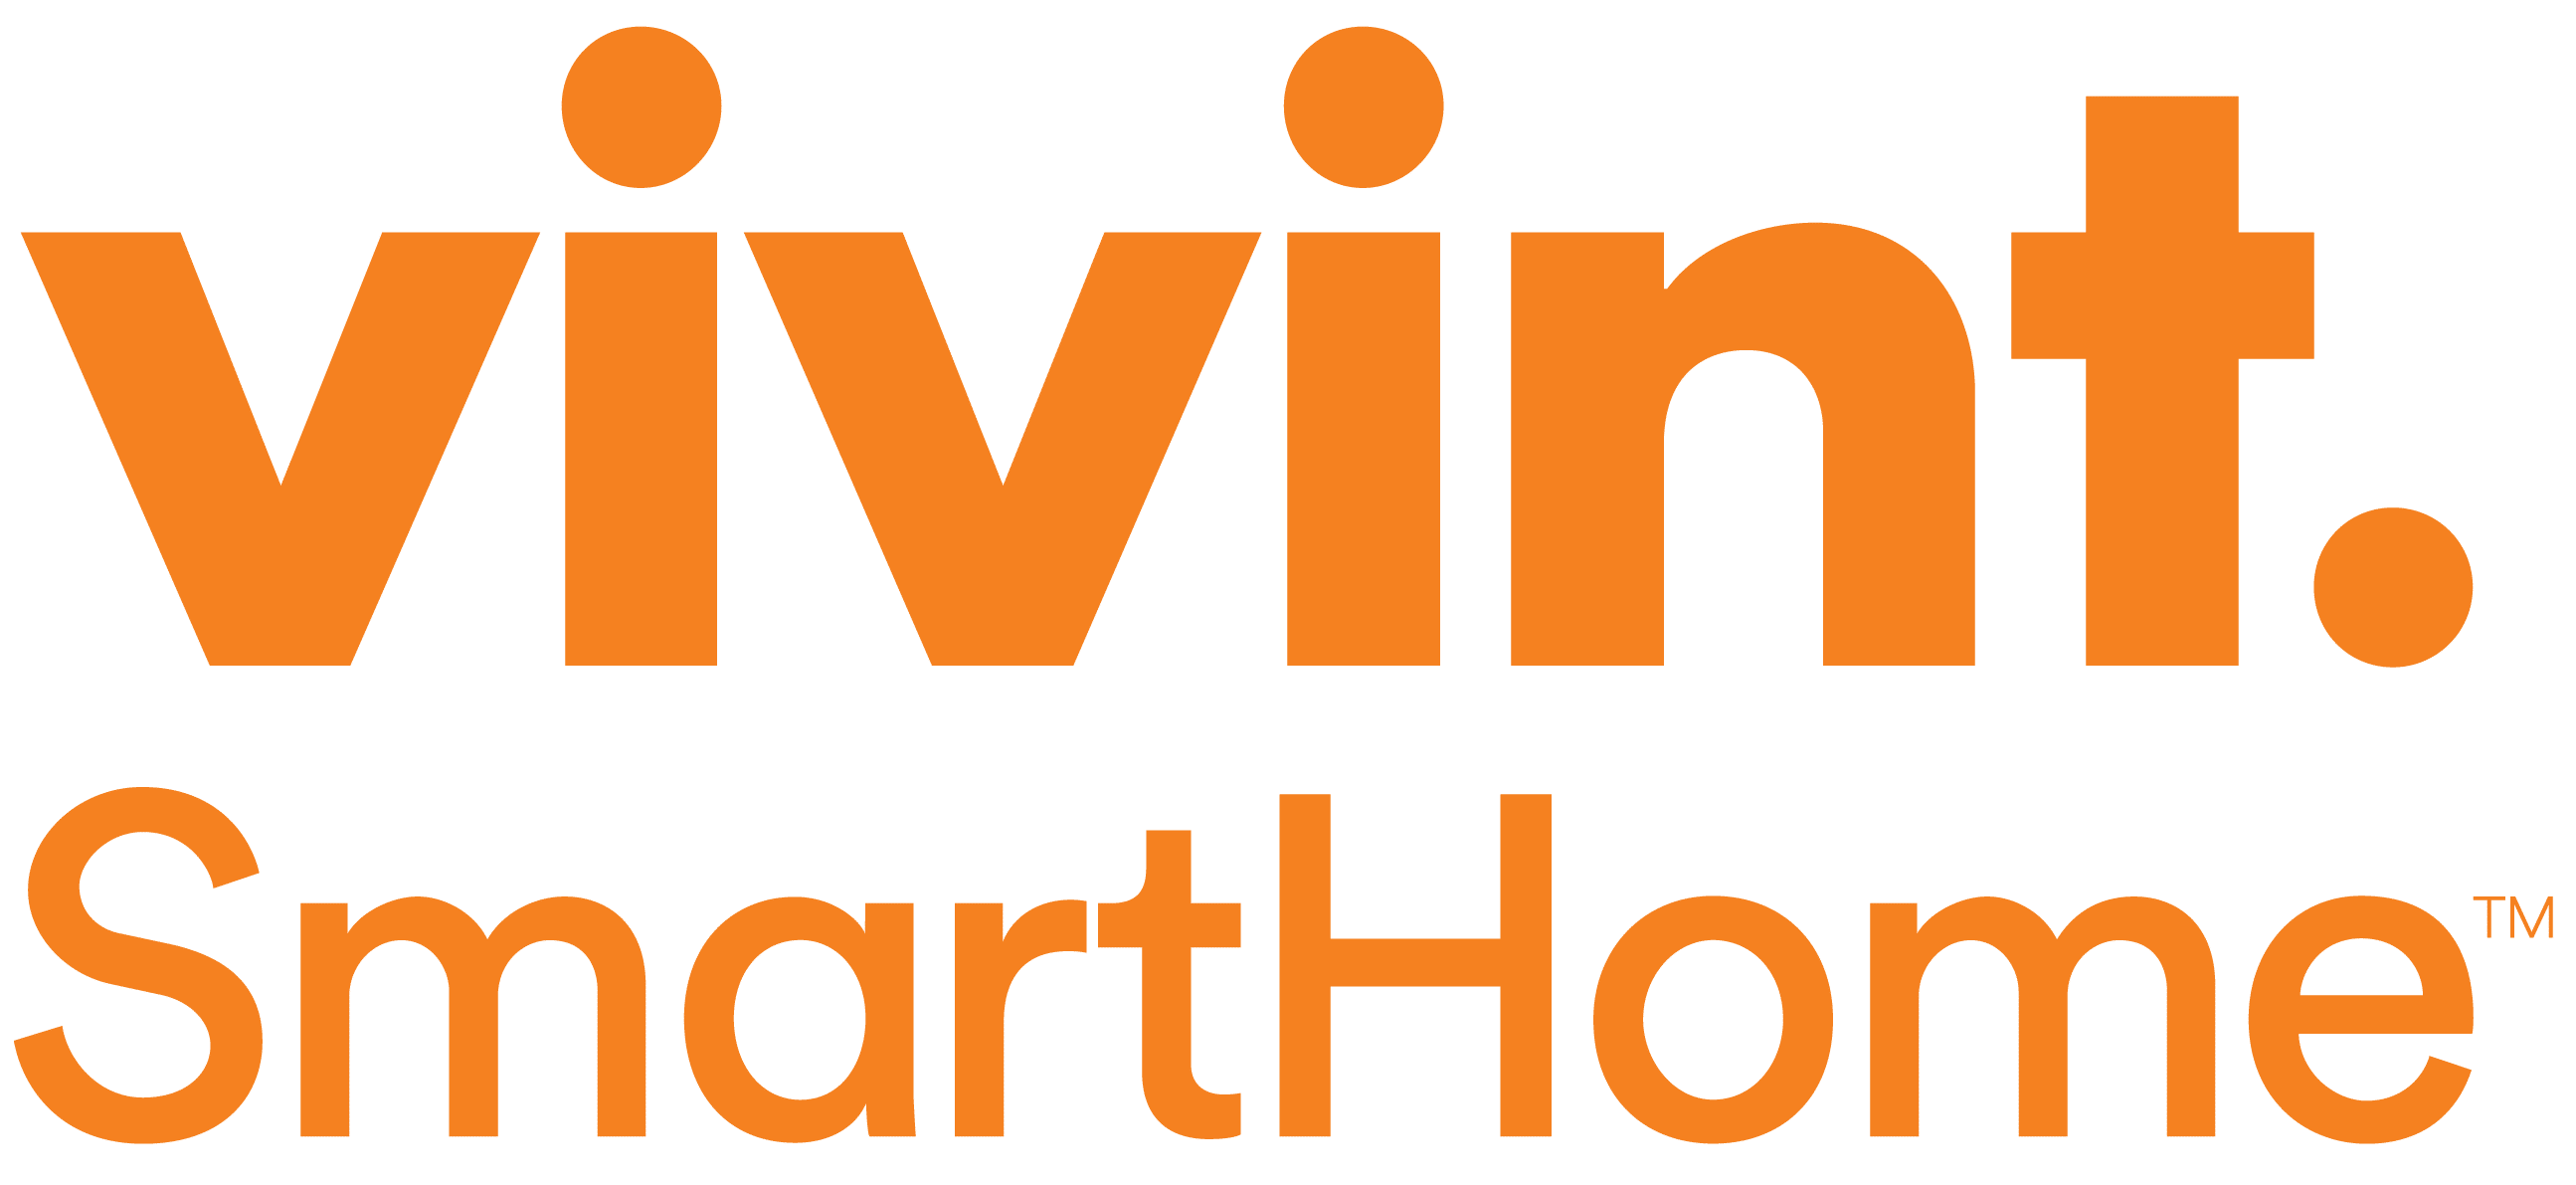 Vivint Smart Home Business Security System Review - 2019